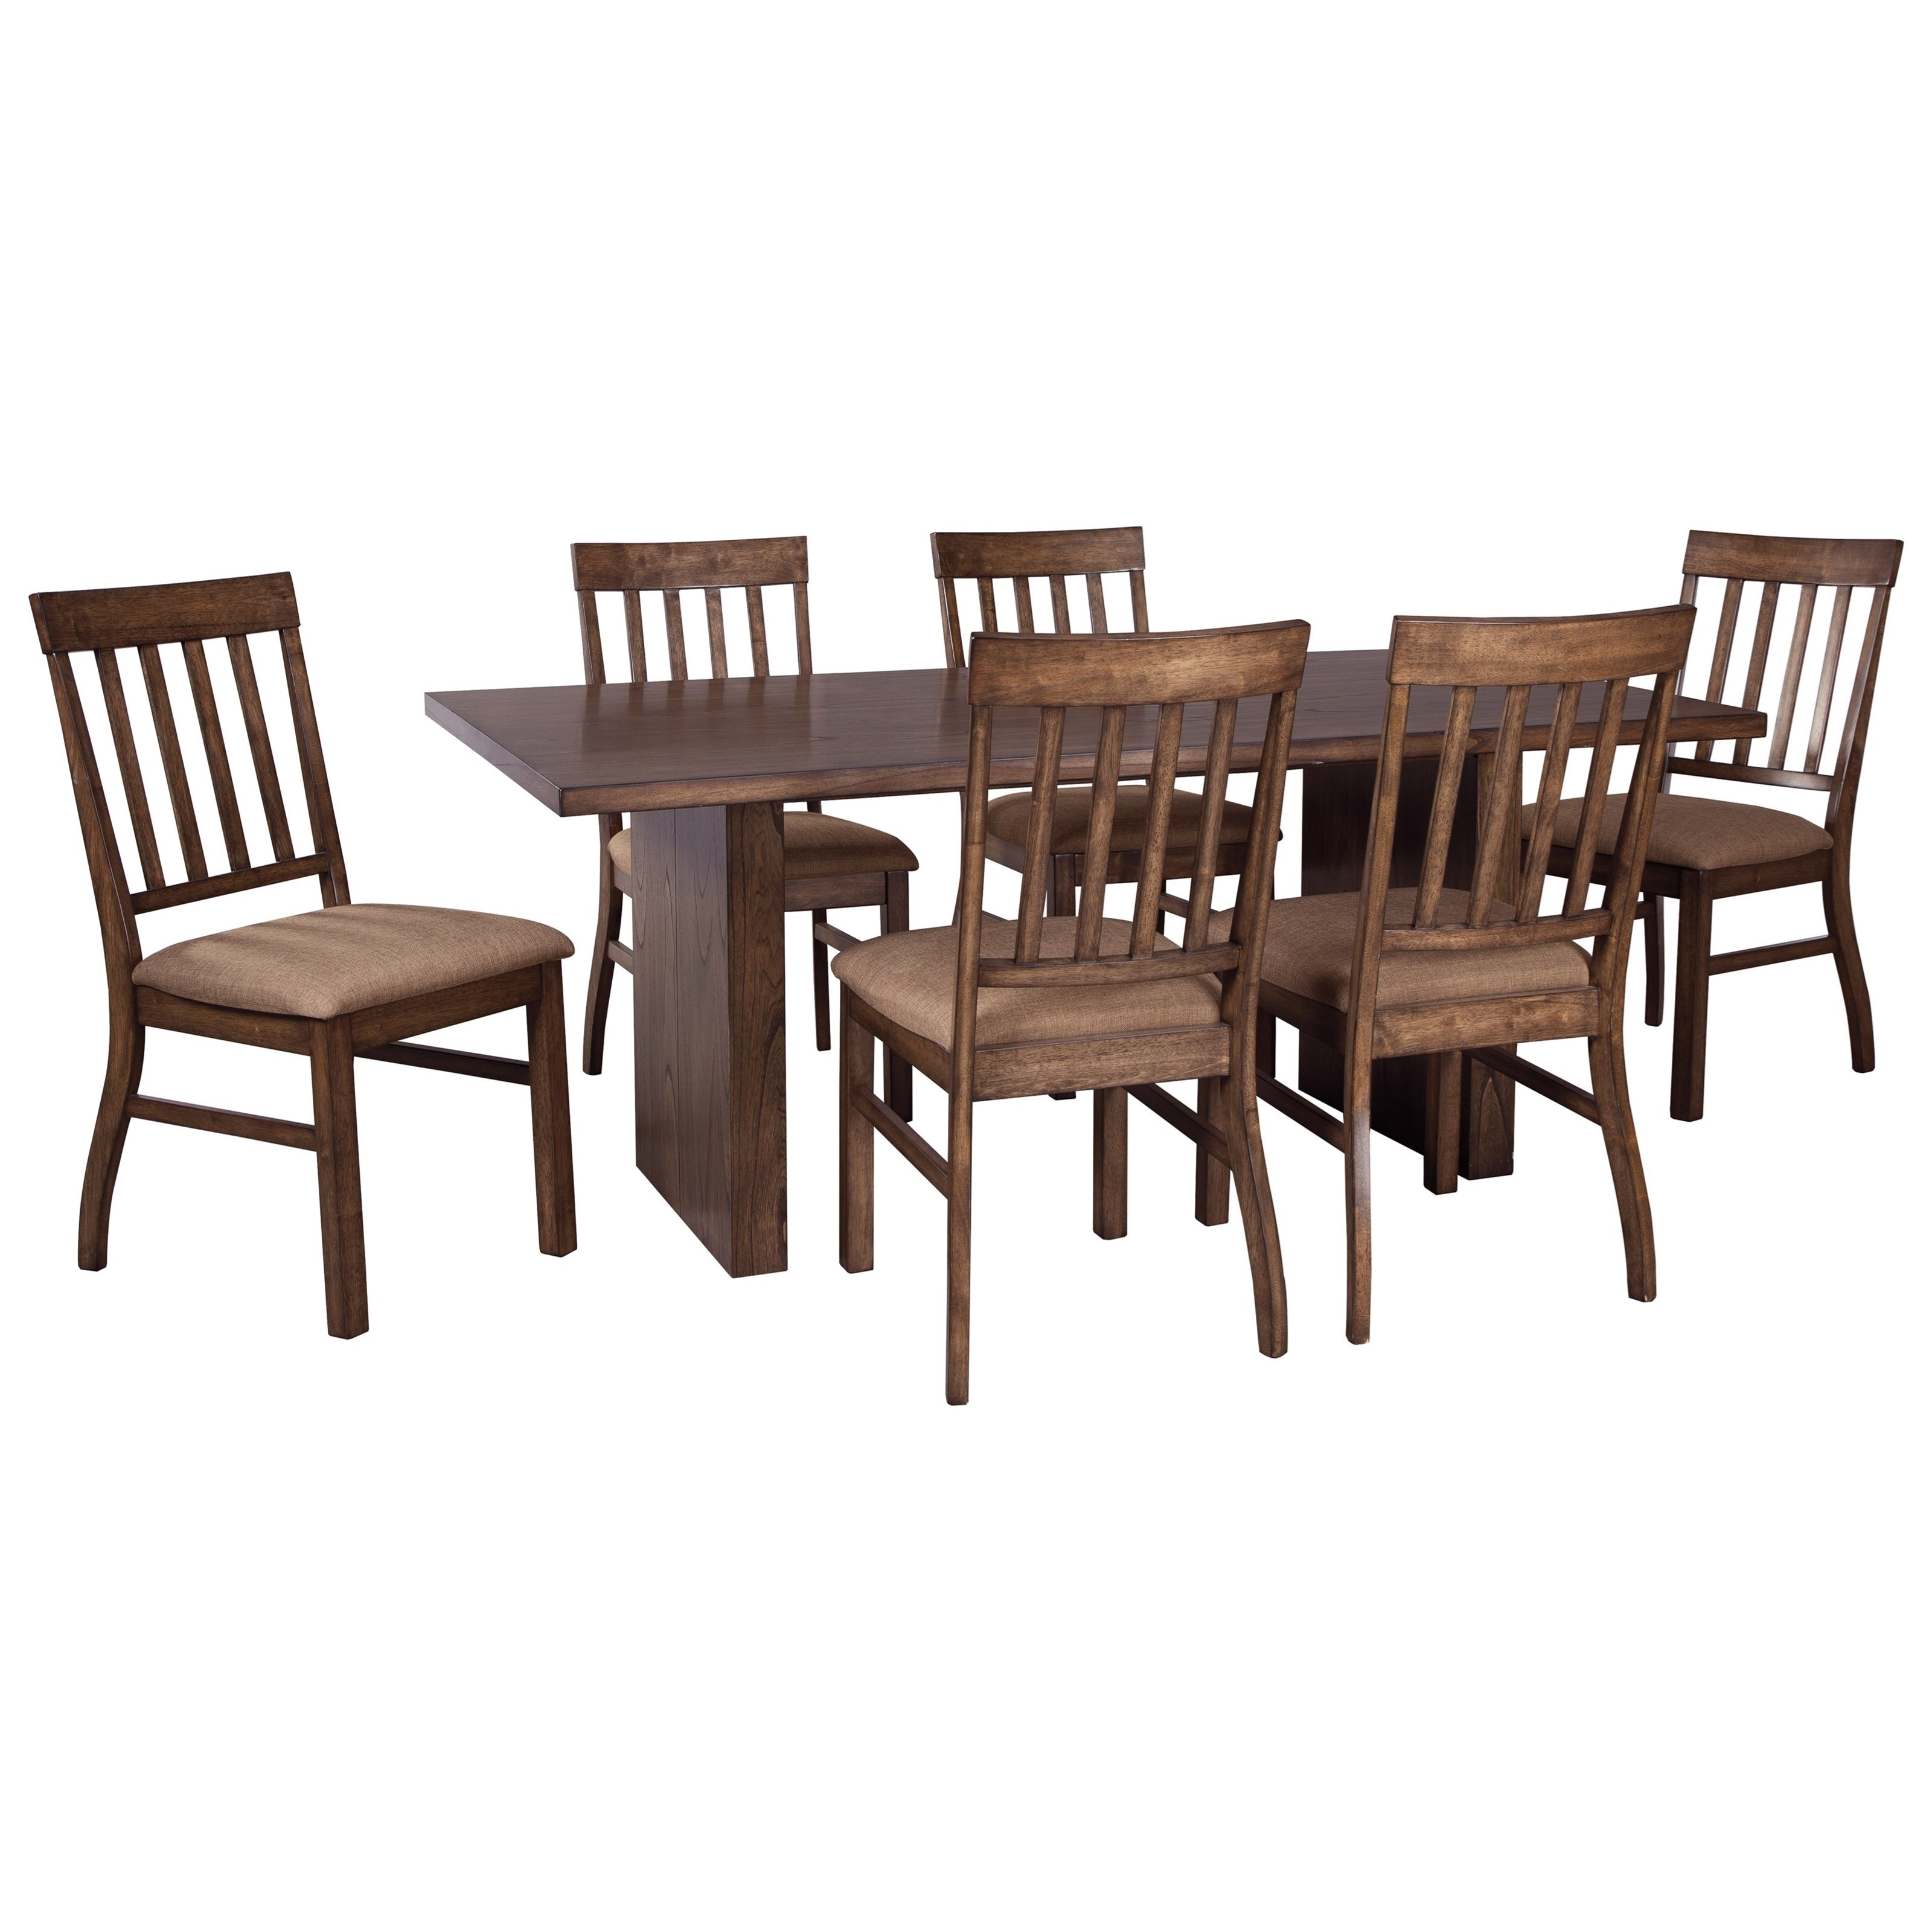 Signature Design by Ashley Zilmar 7-Piece Rectangular Dining Table Set - Item Number: D448-45+6x01